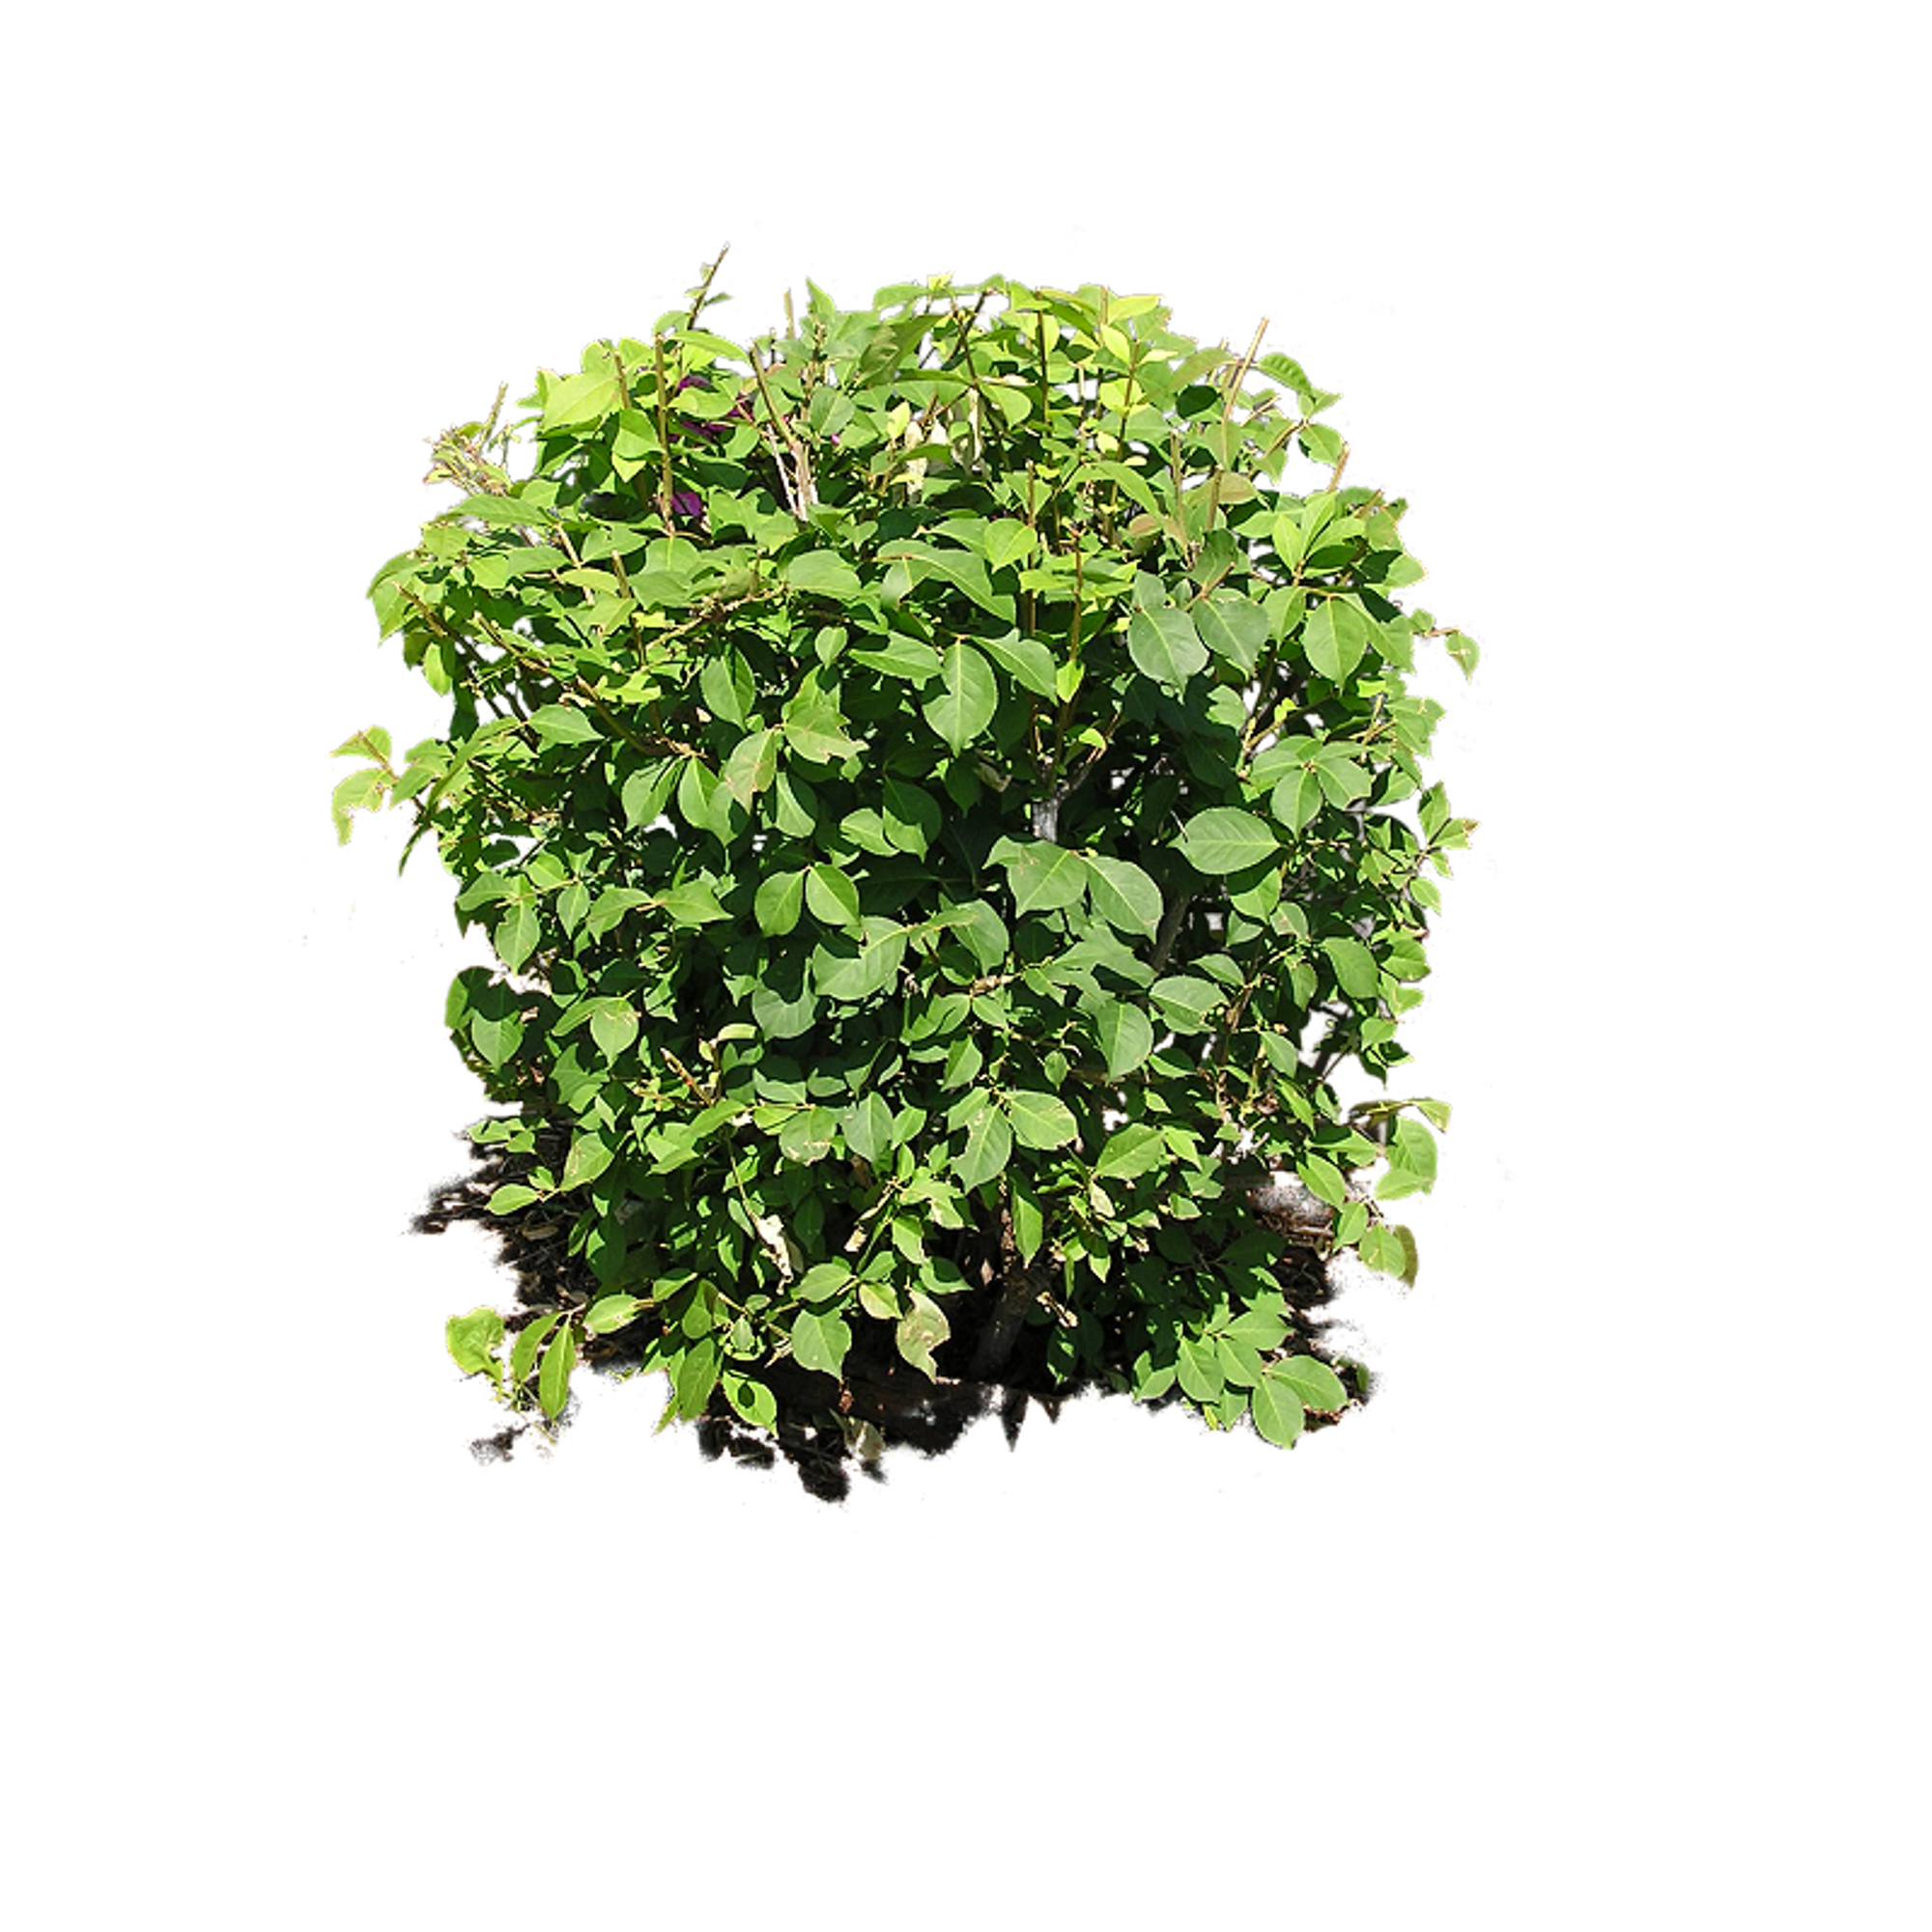 Bush plant png. Bushes images free download